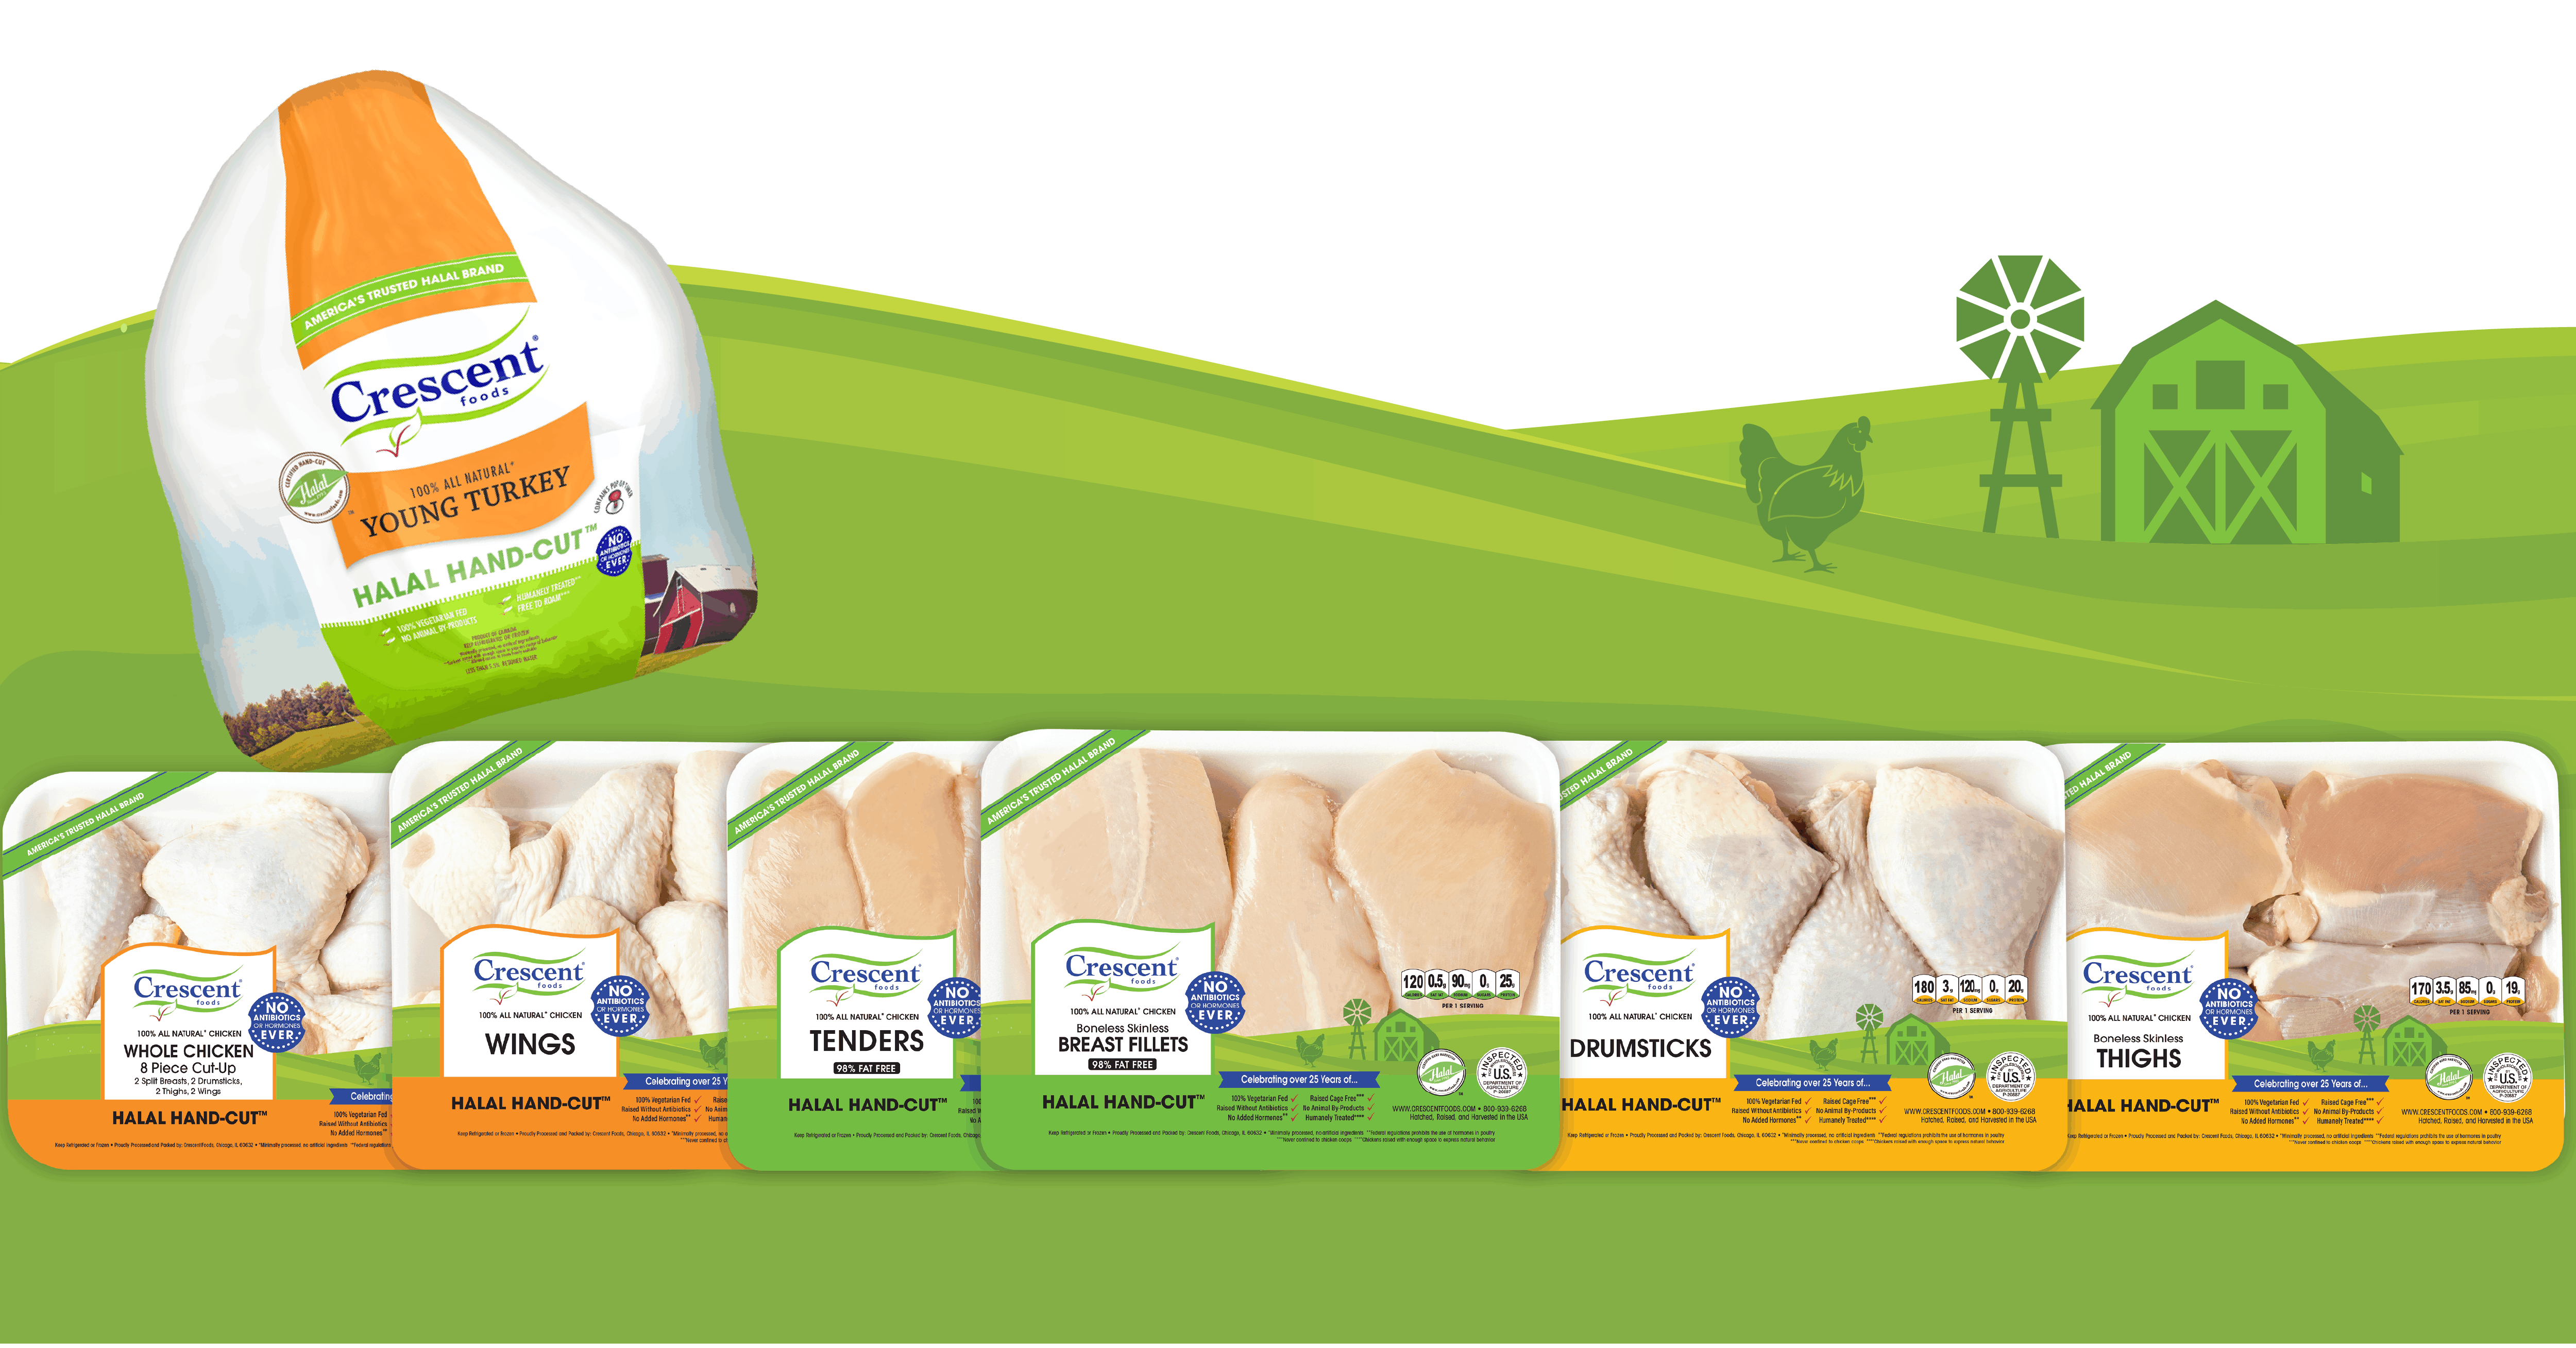 Image shows lineup of chicken packaging and turkey packaging in front of green rolling hills and a green barn